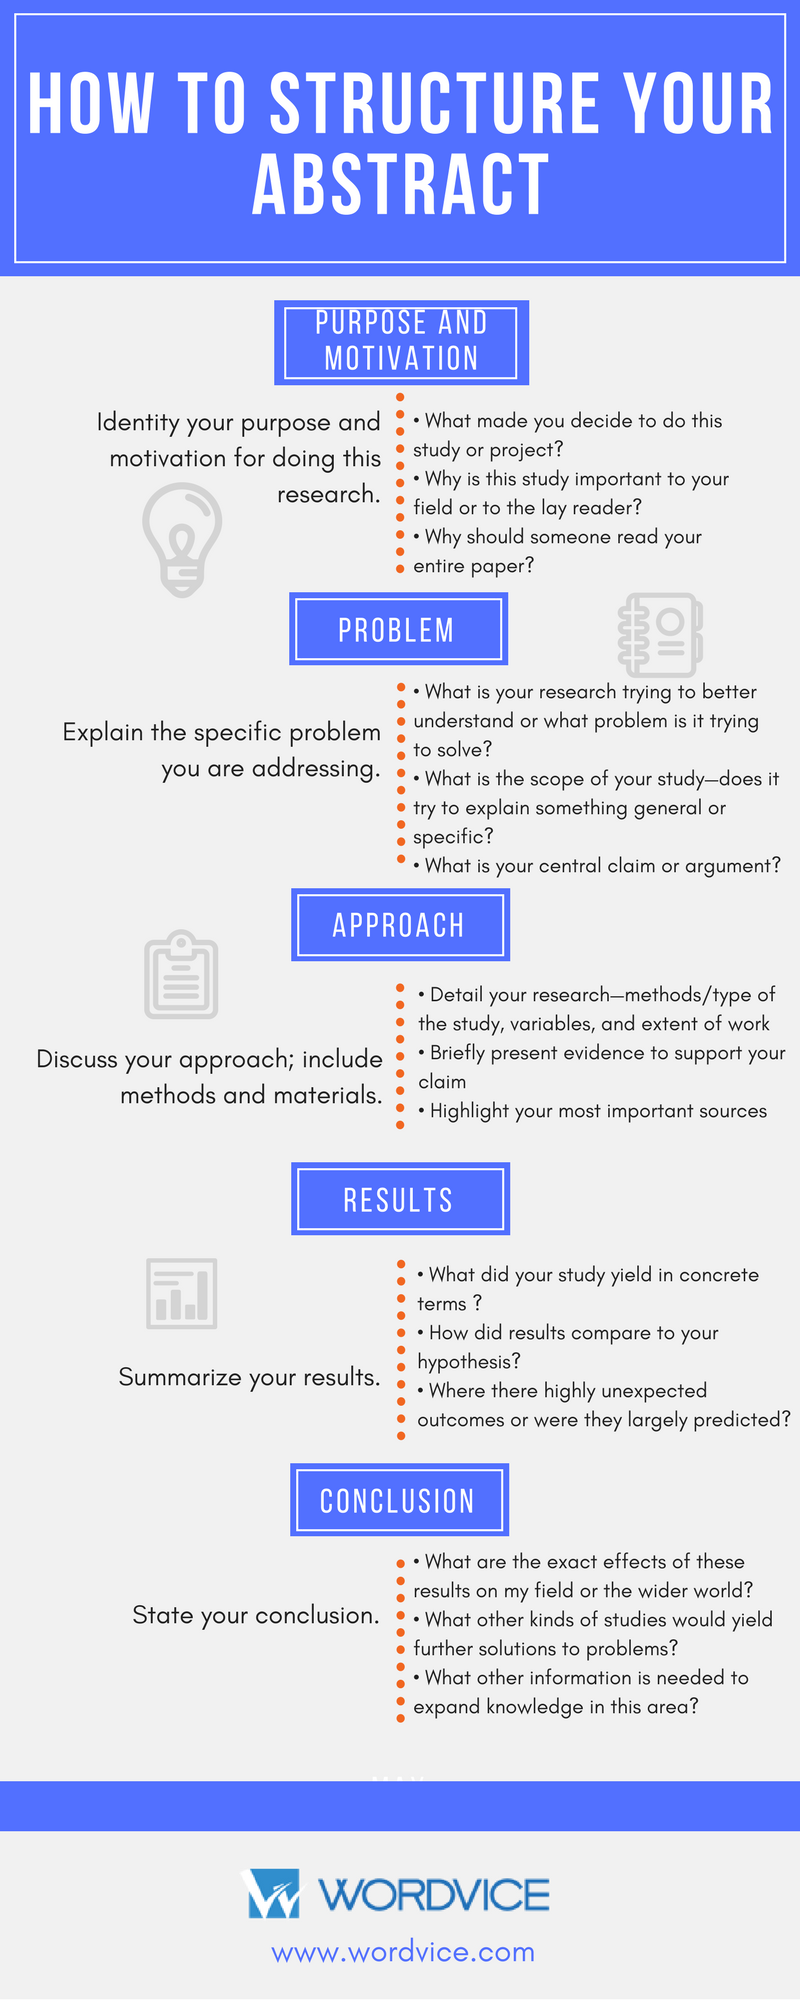 014 How To Structure Your Abstract1 Research Paper Marvelous Do Introduction Write A Outline Pdf Scientific Review Full